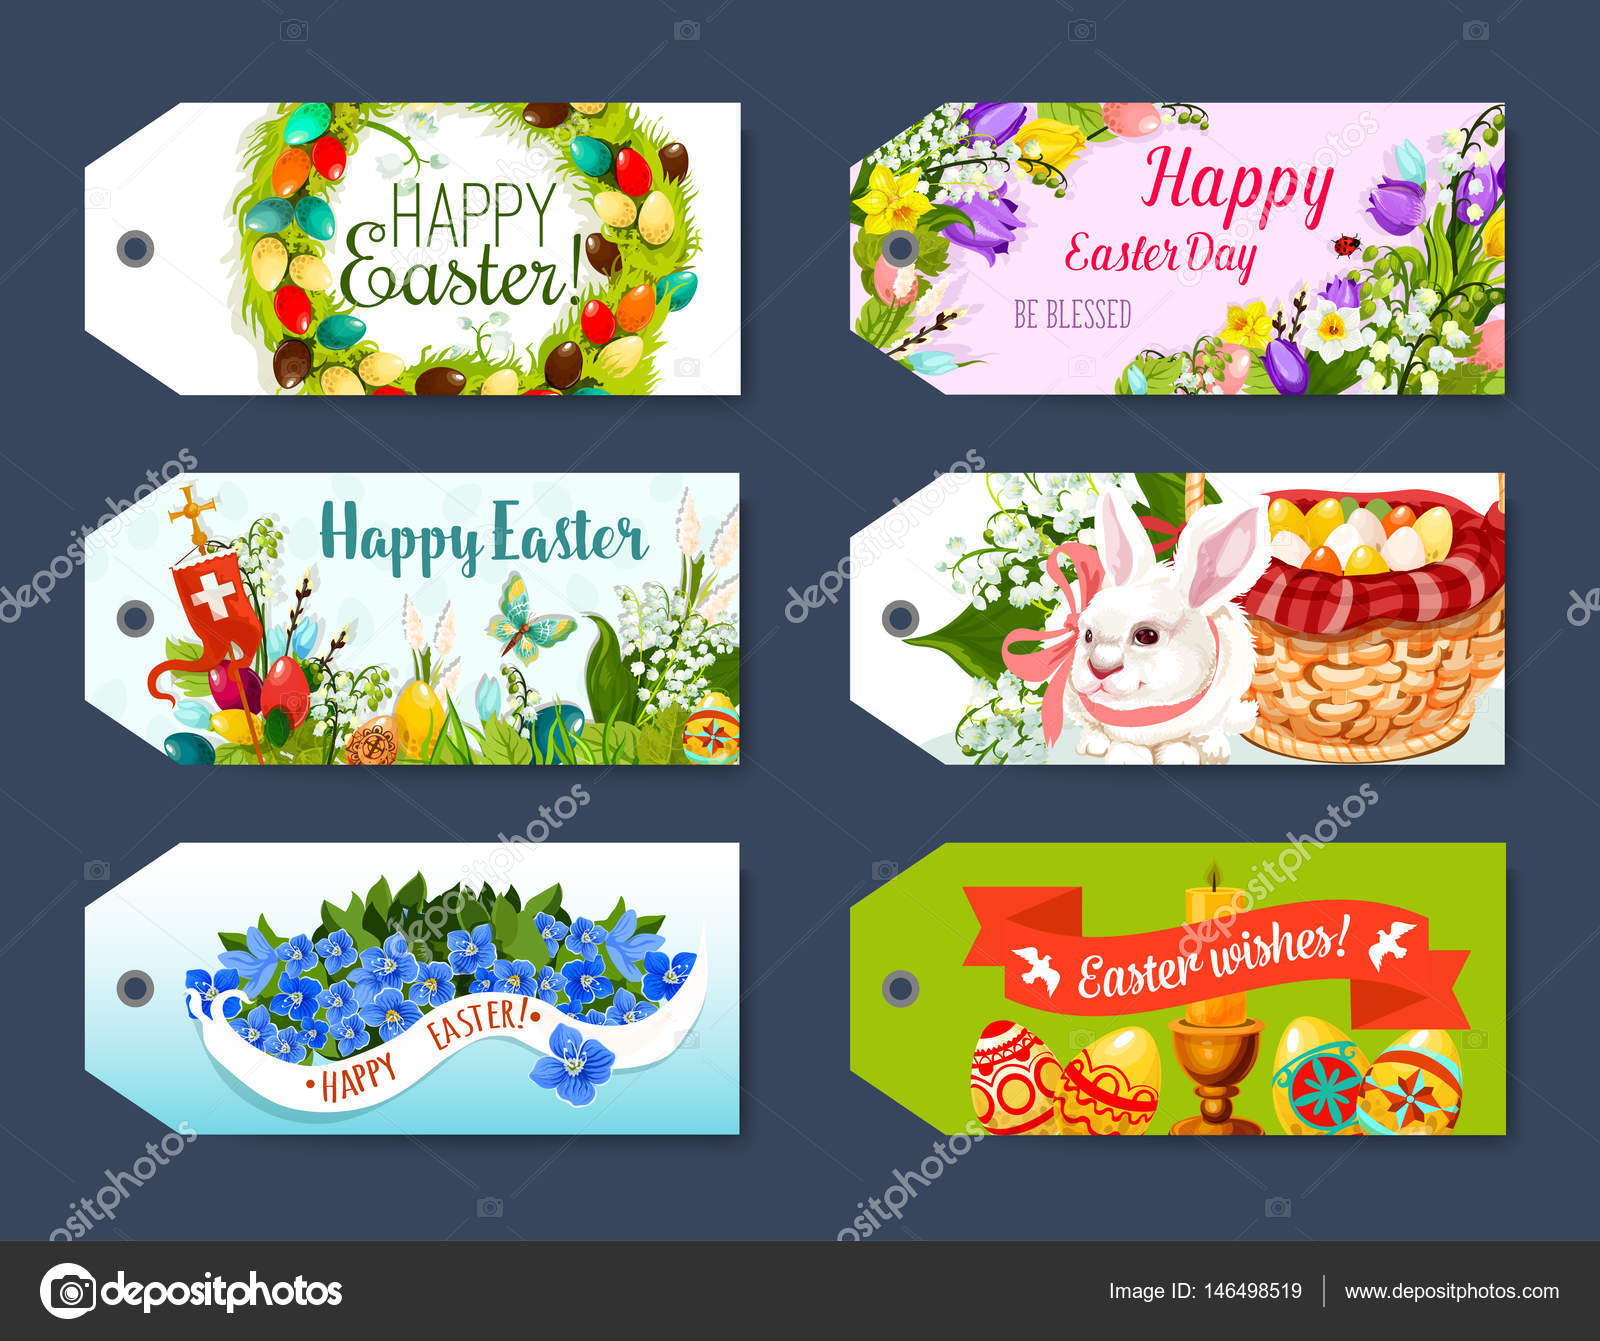 Easter gift tag and greeting label set design stock vector happy easter gift tag and greeting label set easter egg rabbit bunny egg hunt basket floral wreath of egg and flowers of tulip narcissus and lily negle Image collections